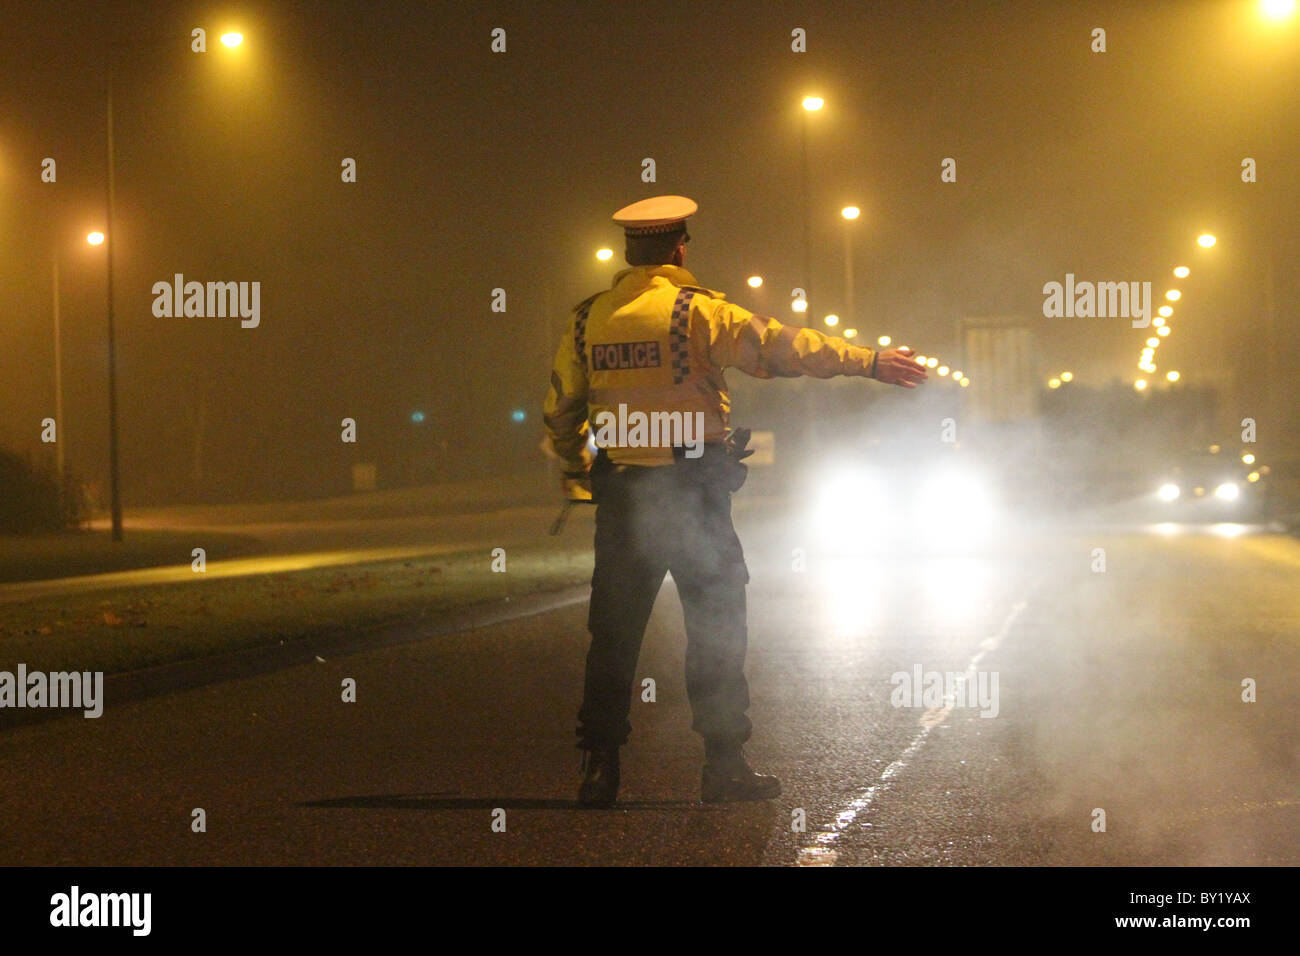 Christmas drink drive initiative by Thames Valley police in the city of Milton Keynes, England, UK. - Stock Image